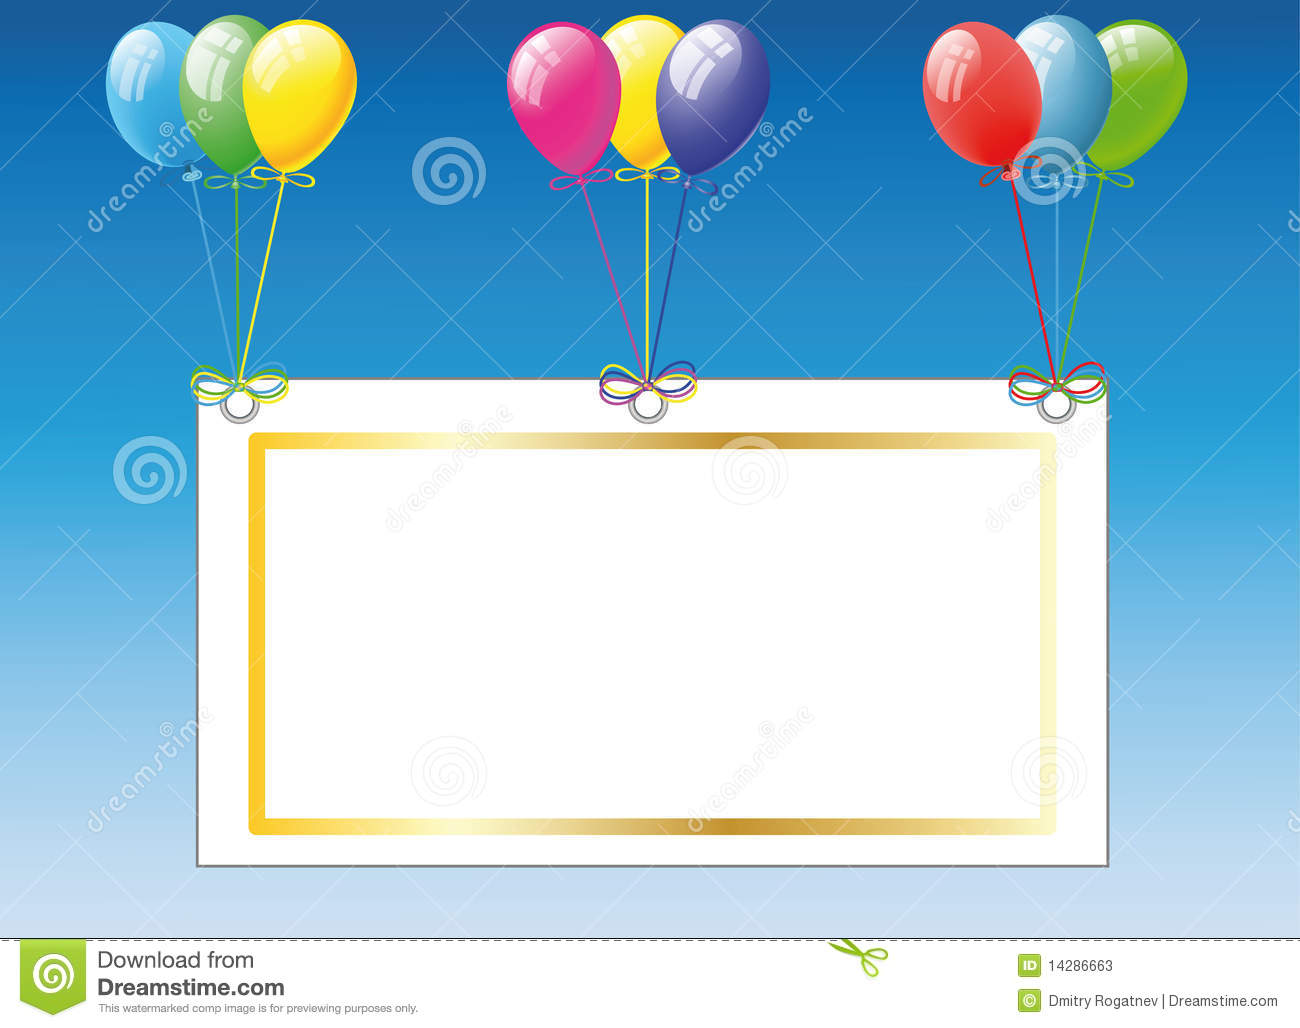 Birthday Card With Balloons Stock Photos - Image: 14286663